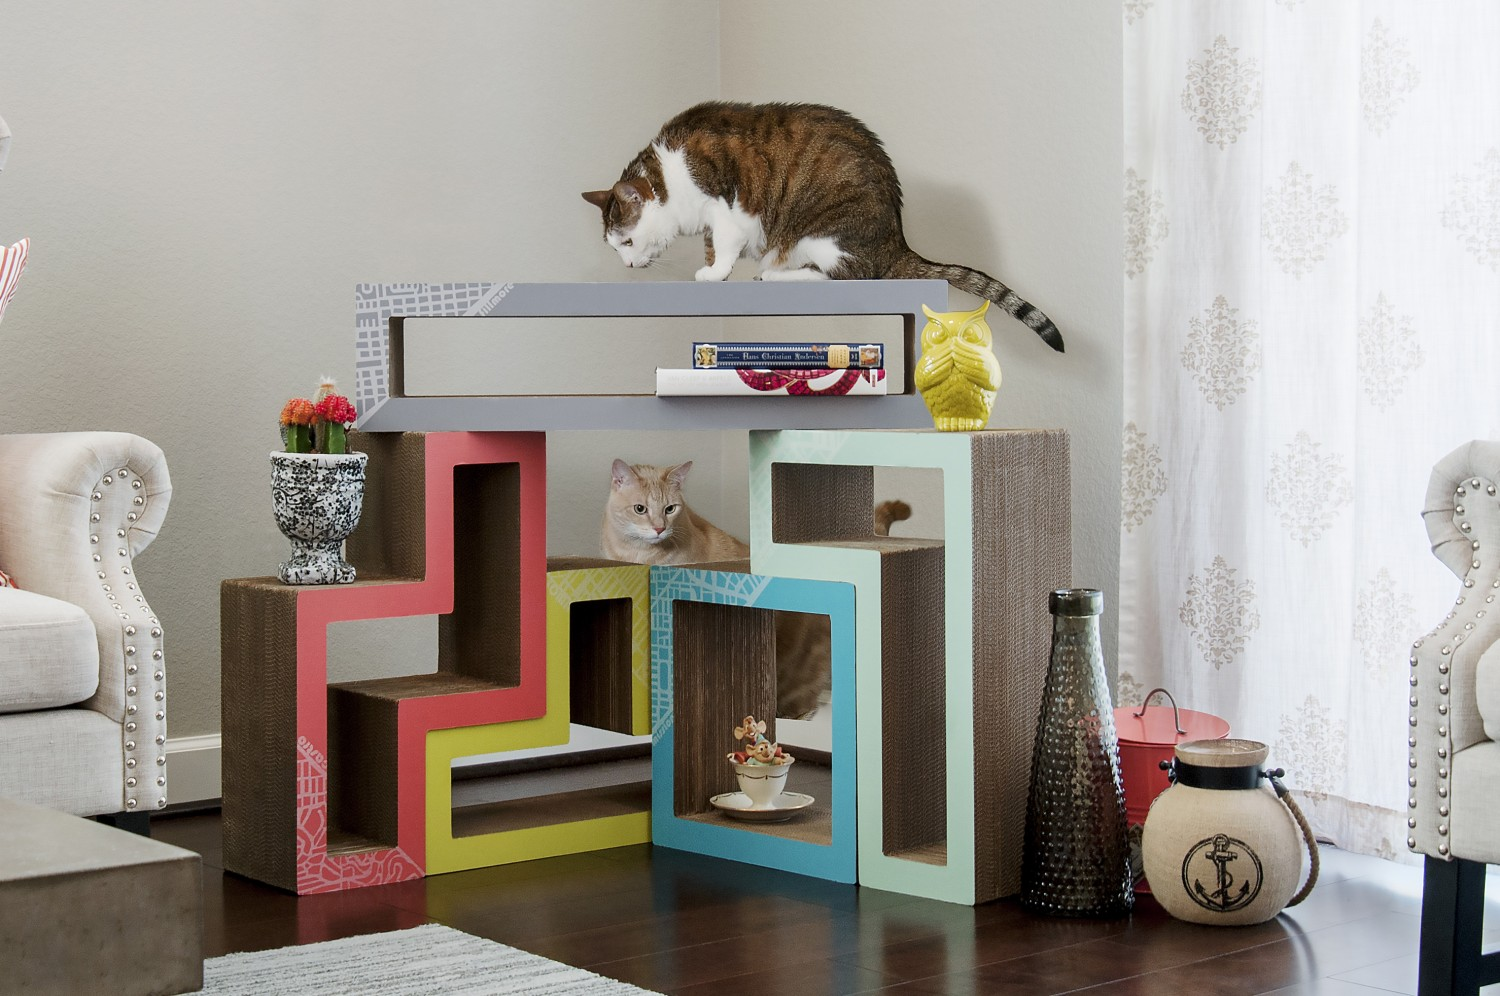 Katris, Papercut Lab, Tetris Furniture, Cats